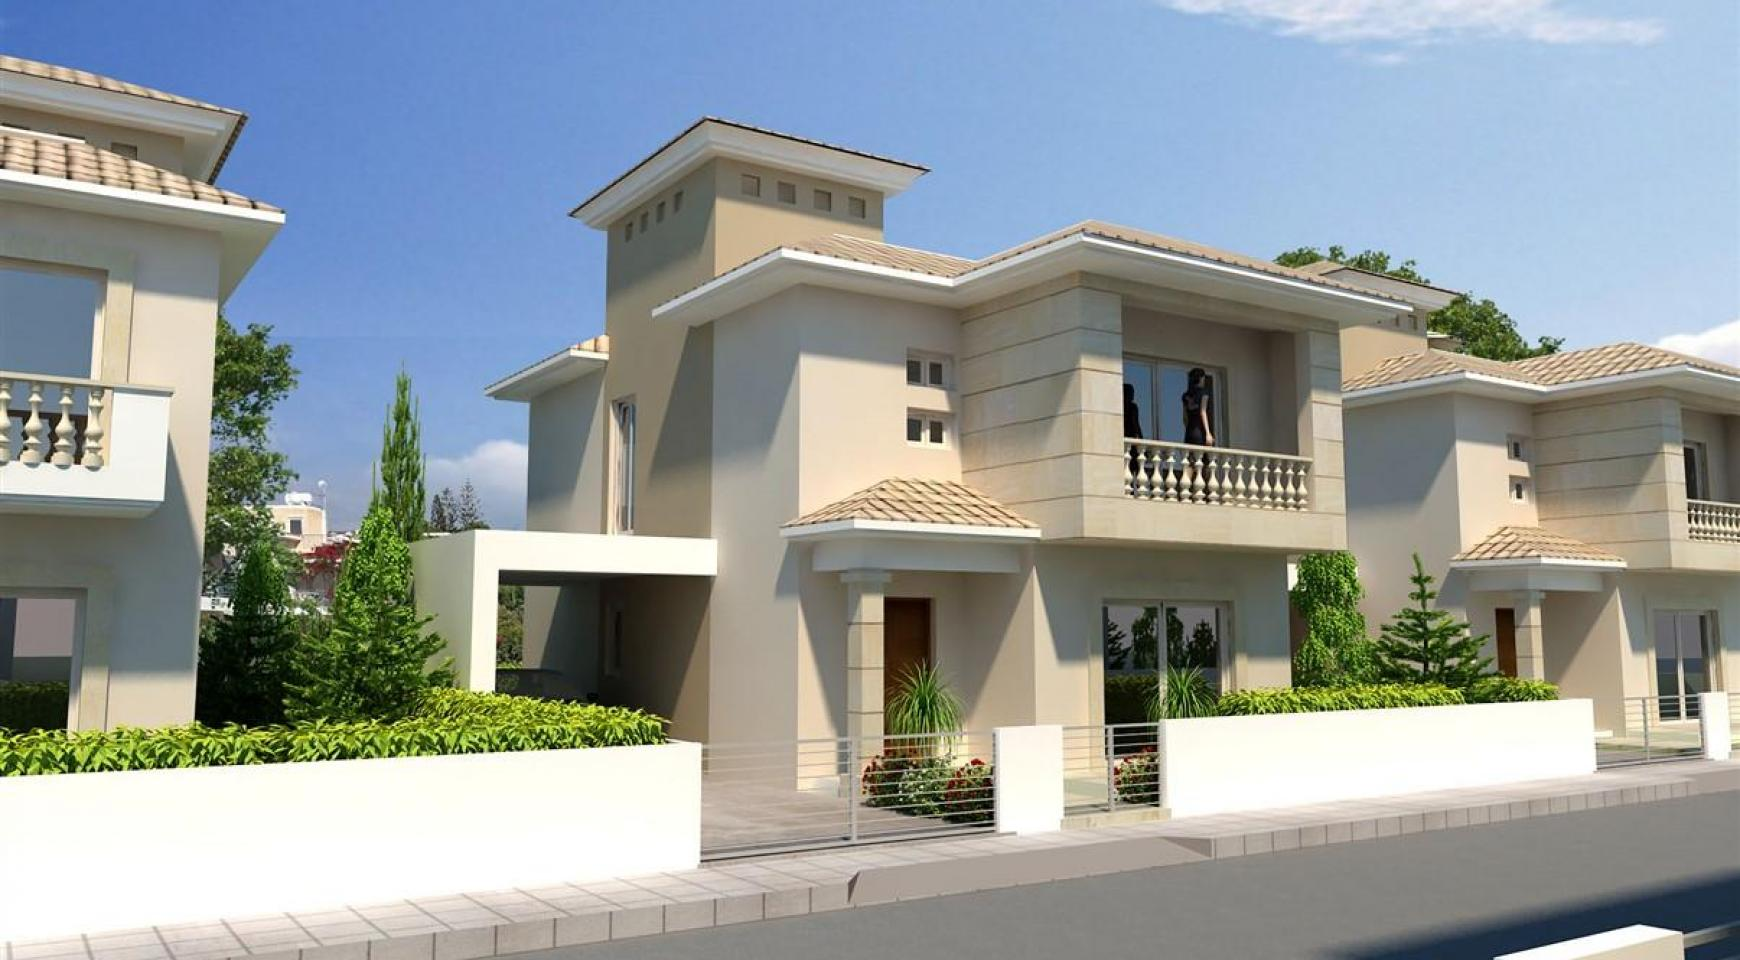 3 Bedroom Villa within a New Project - 21